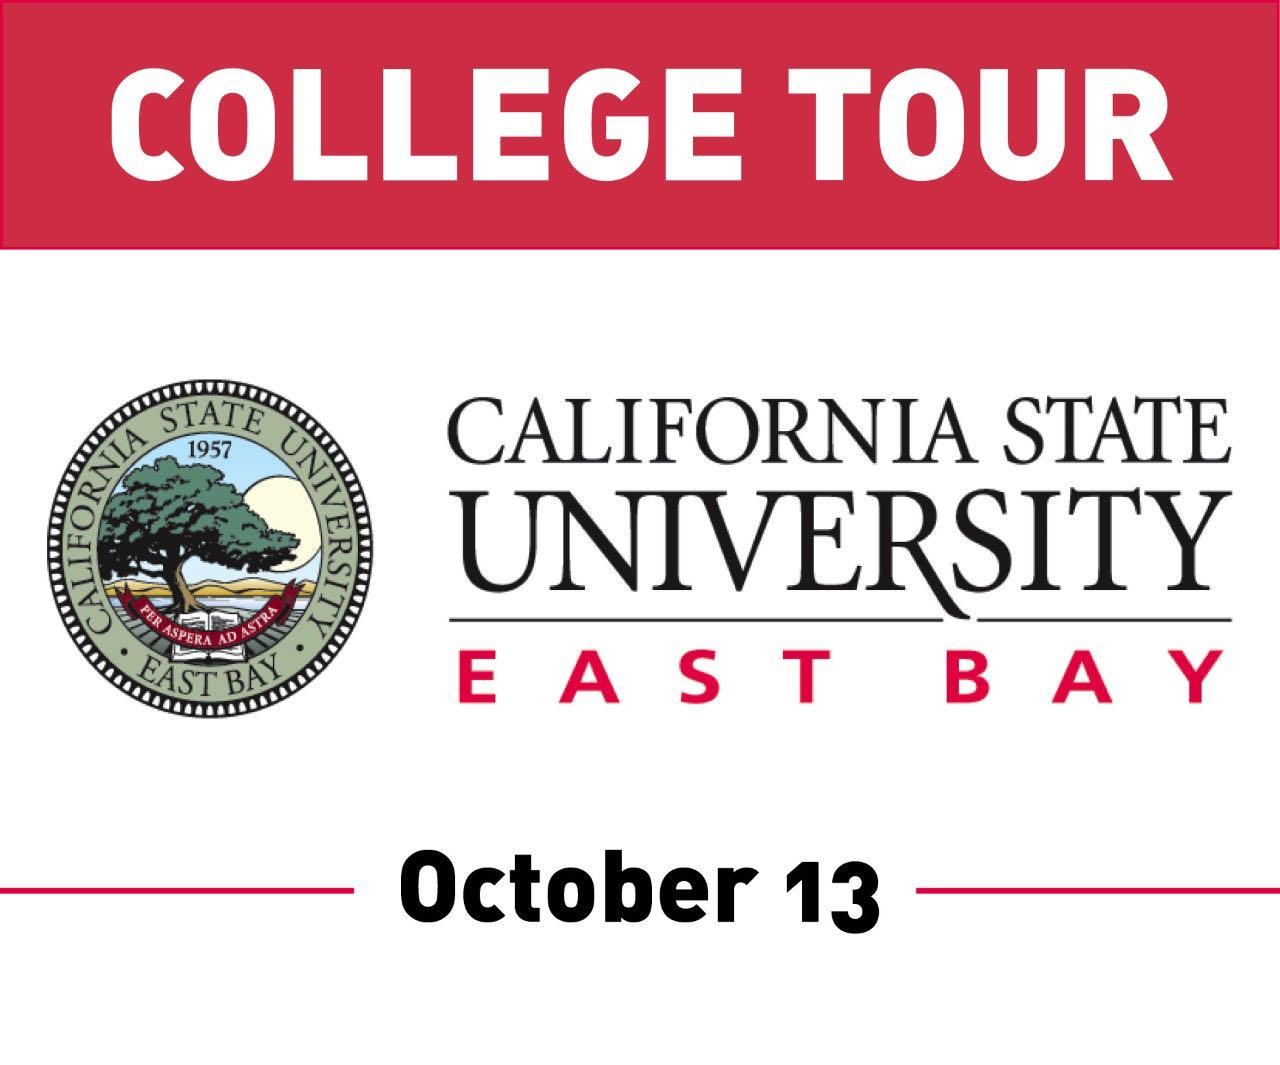 College tour CSUEB